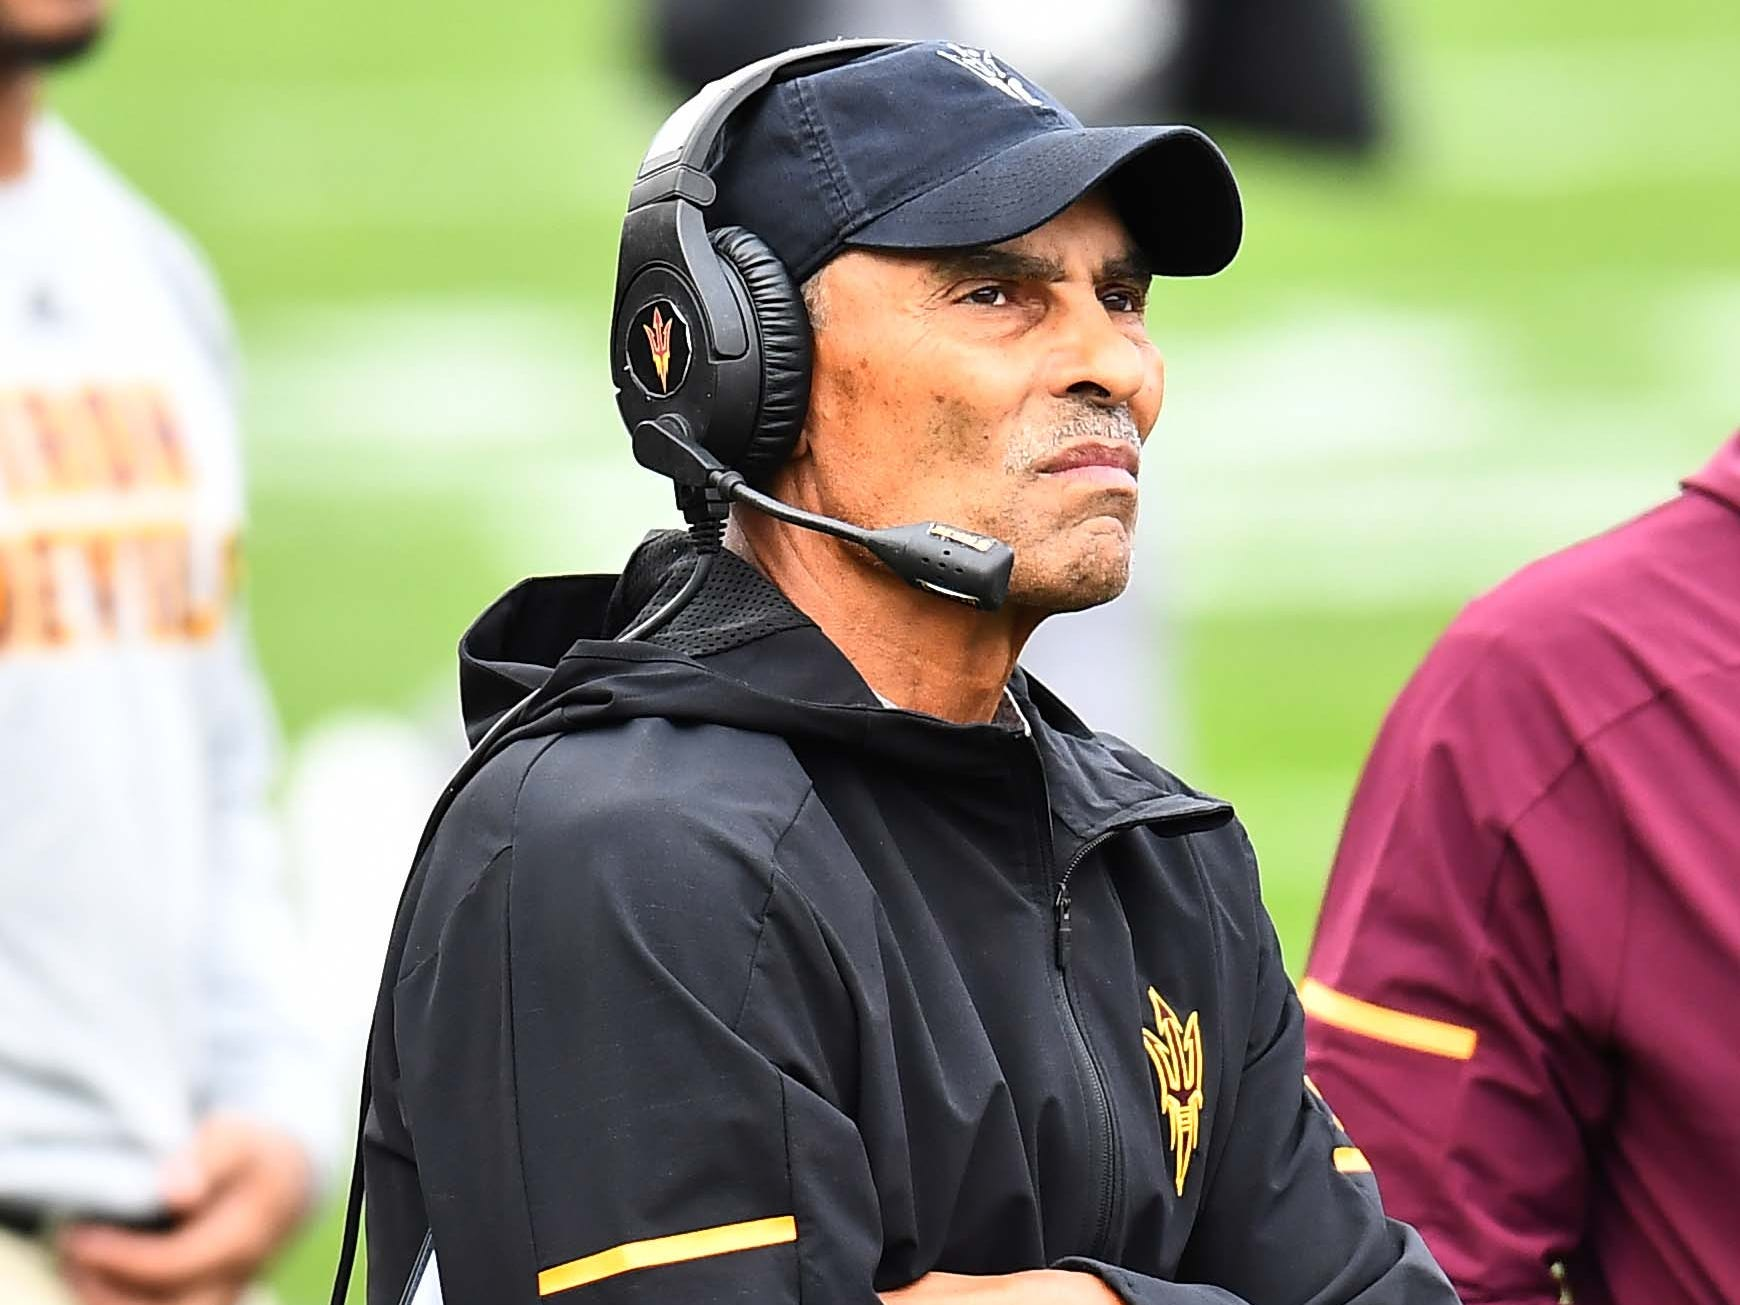 Oct 6, 2018; Boulder, CO, USA; Arizona State Sun Devils head coach Herm Edwards during second quarter against the Colorado Buffaloes at Folsom Field. Mandatory Credit: Ron Chenoy-USA TODAY Sports